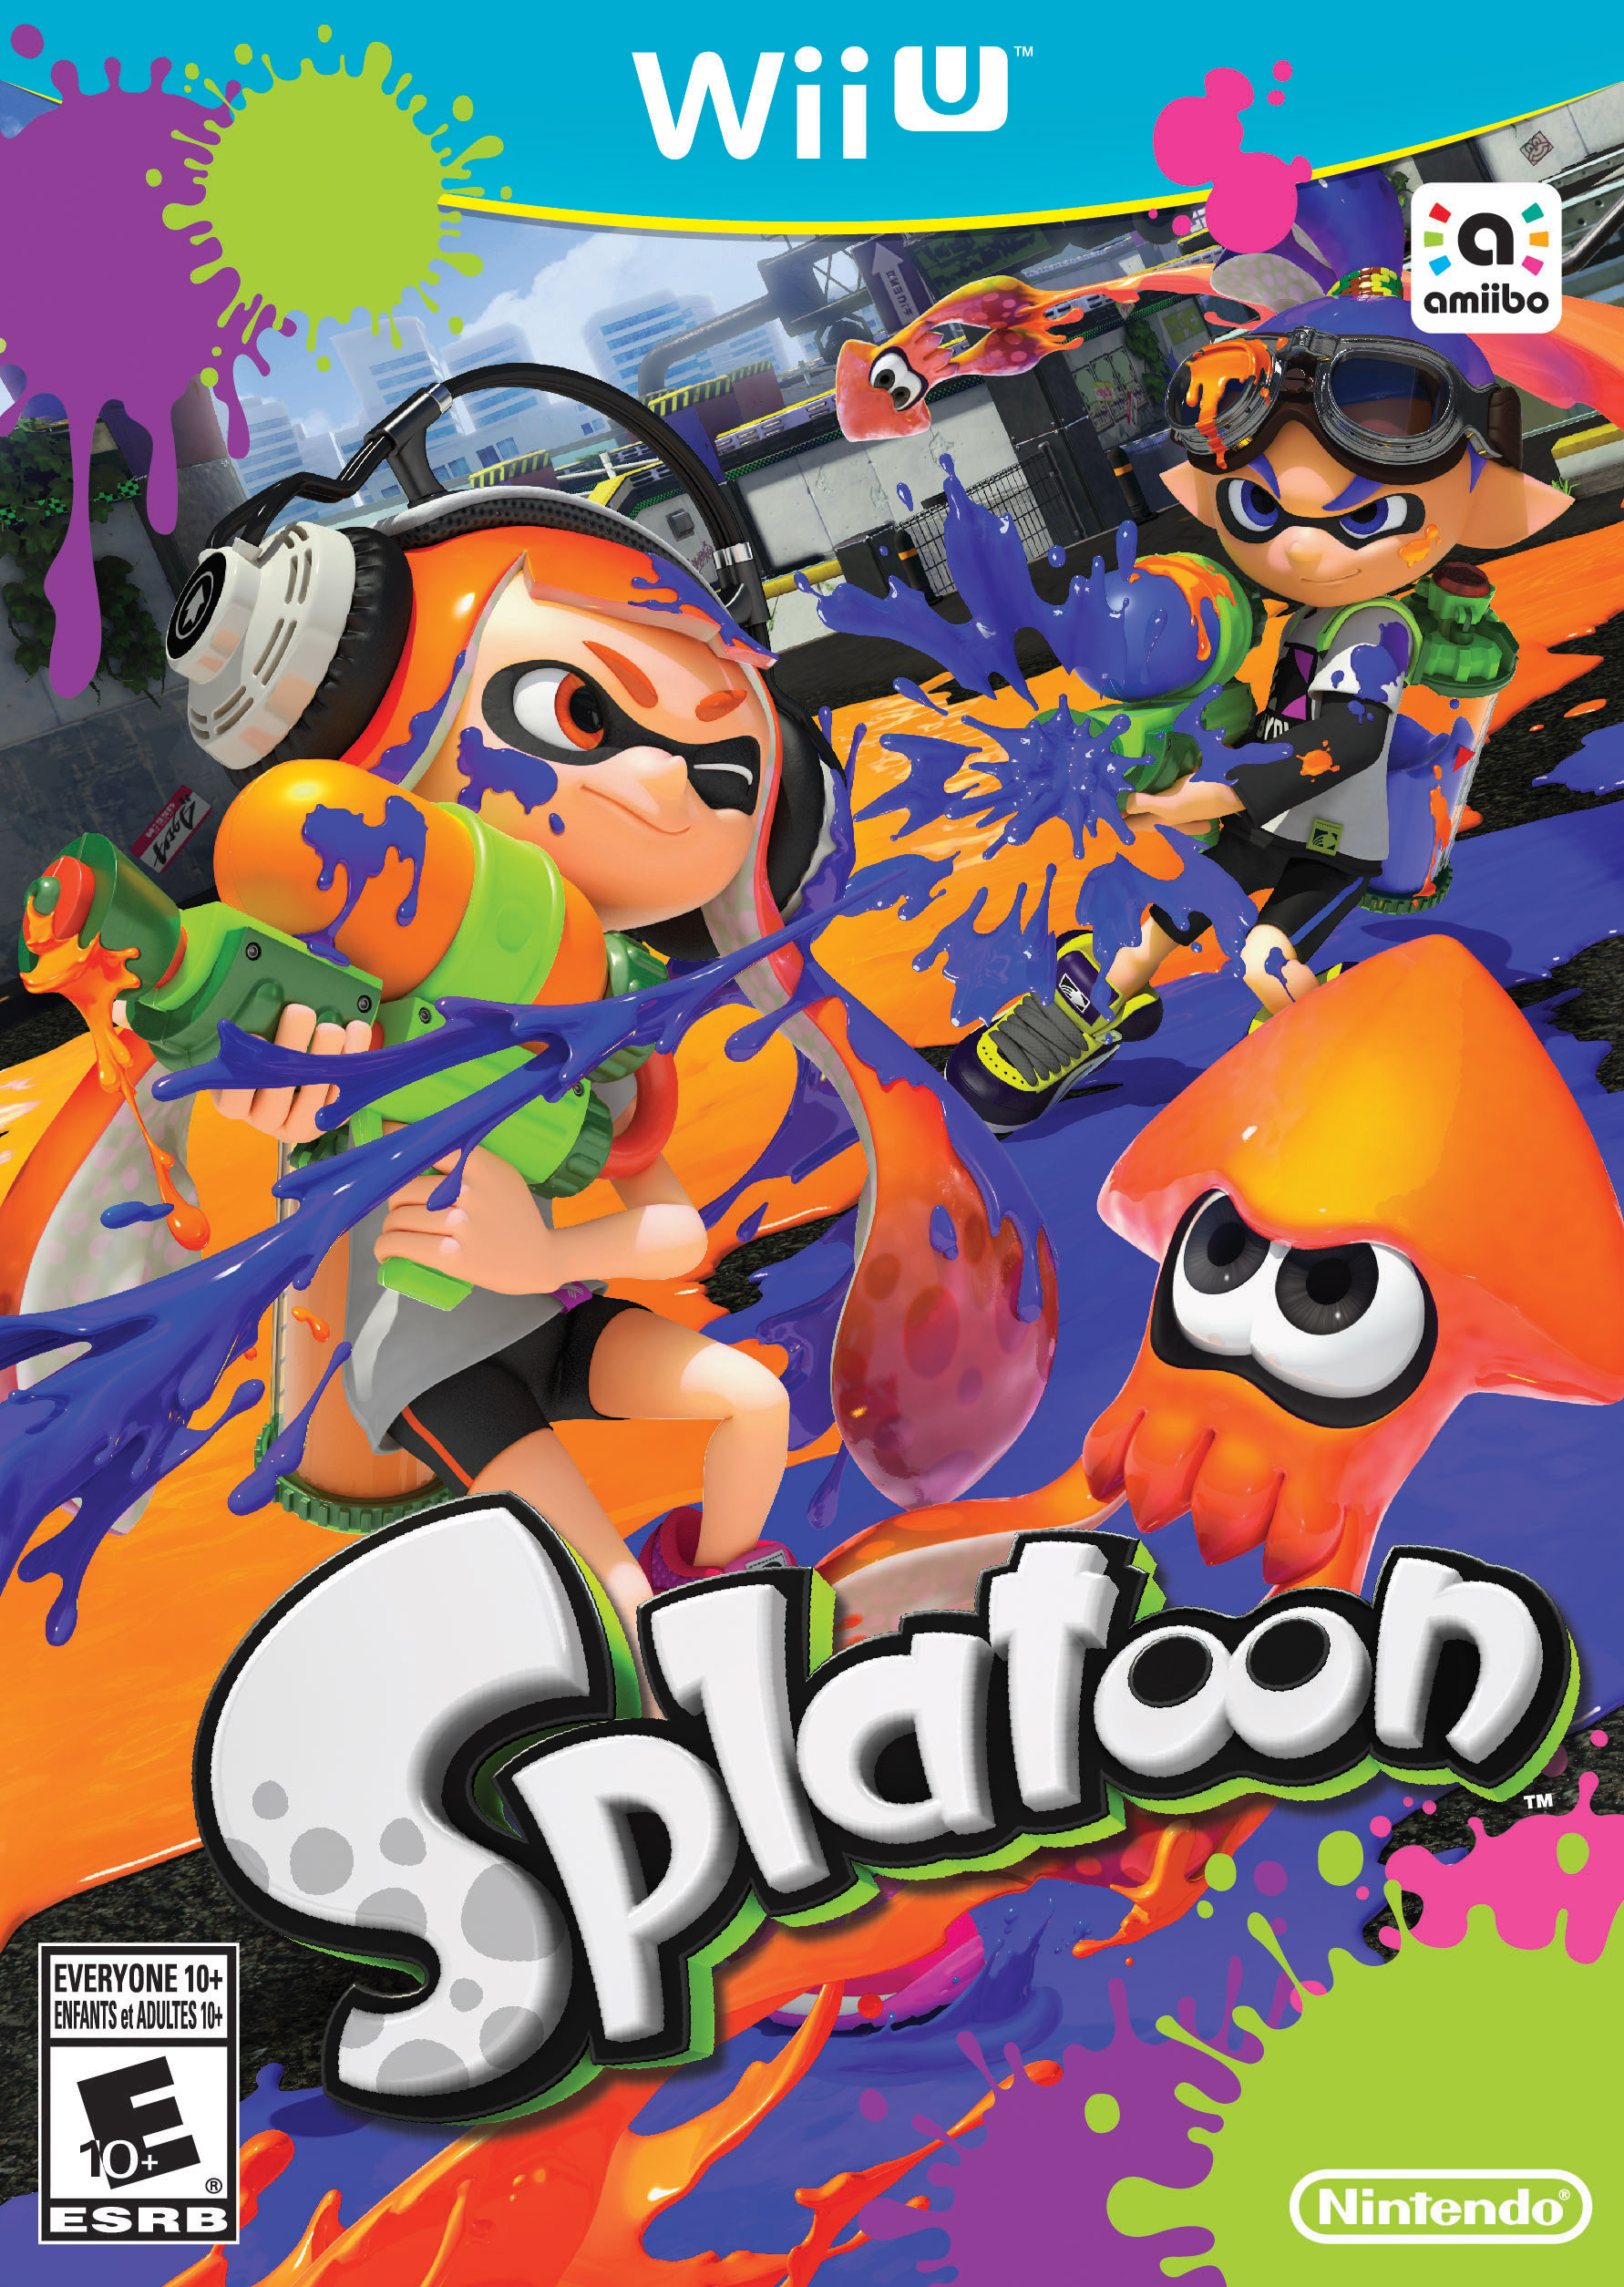 Wii U Splatoon